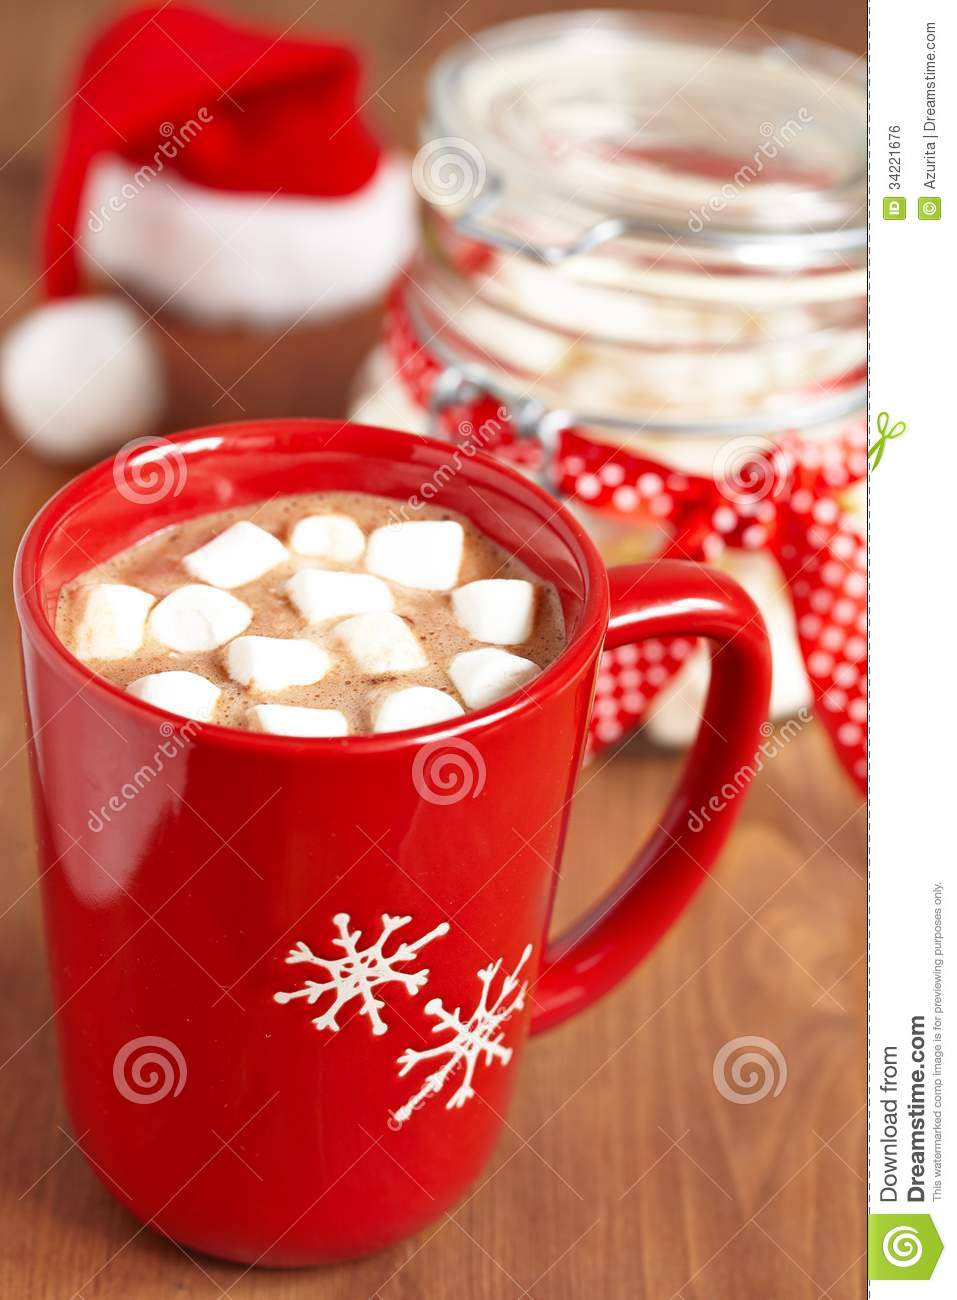 Froth Clipart Hot Chocolate